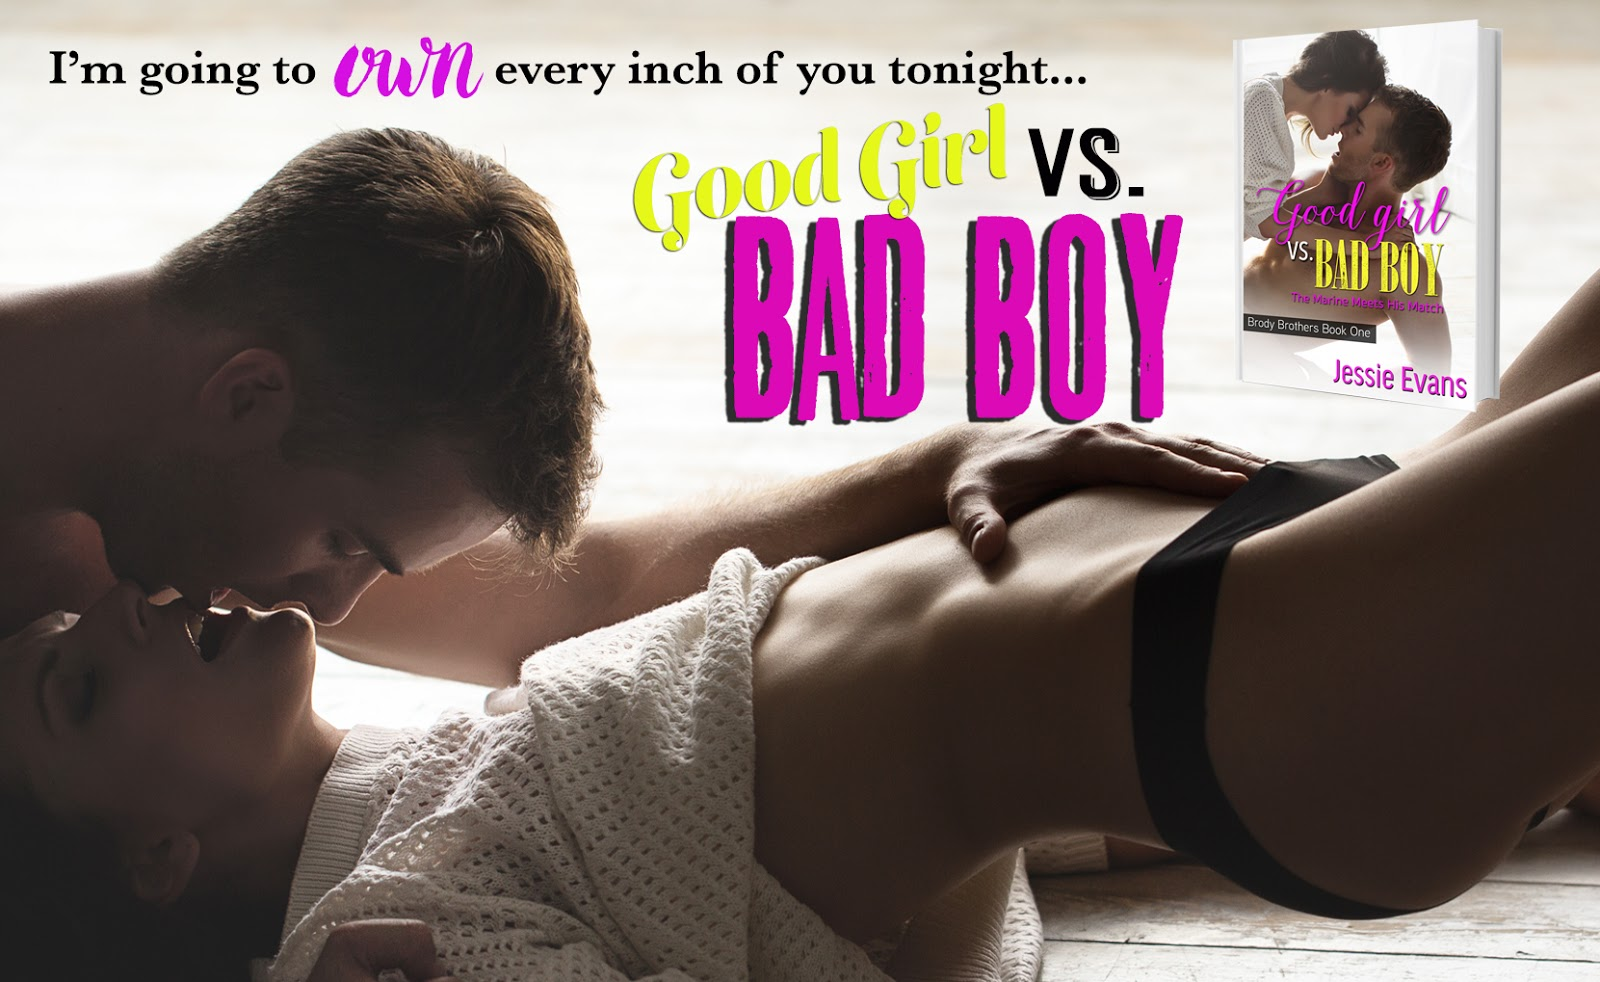 Boy and girl in bad